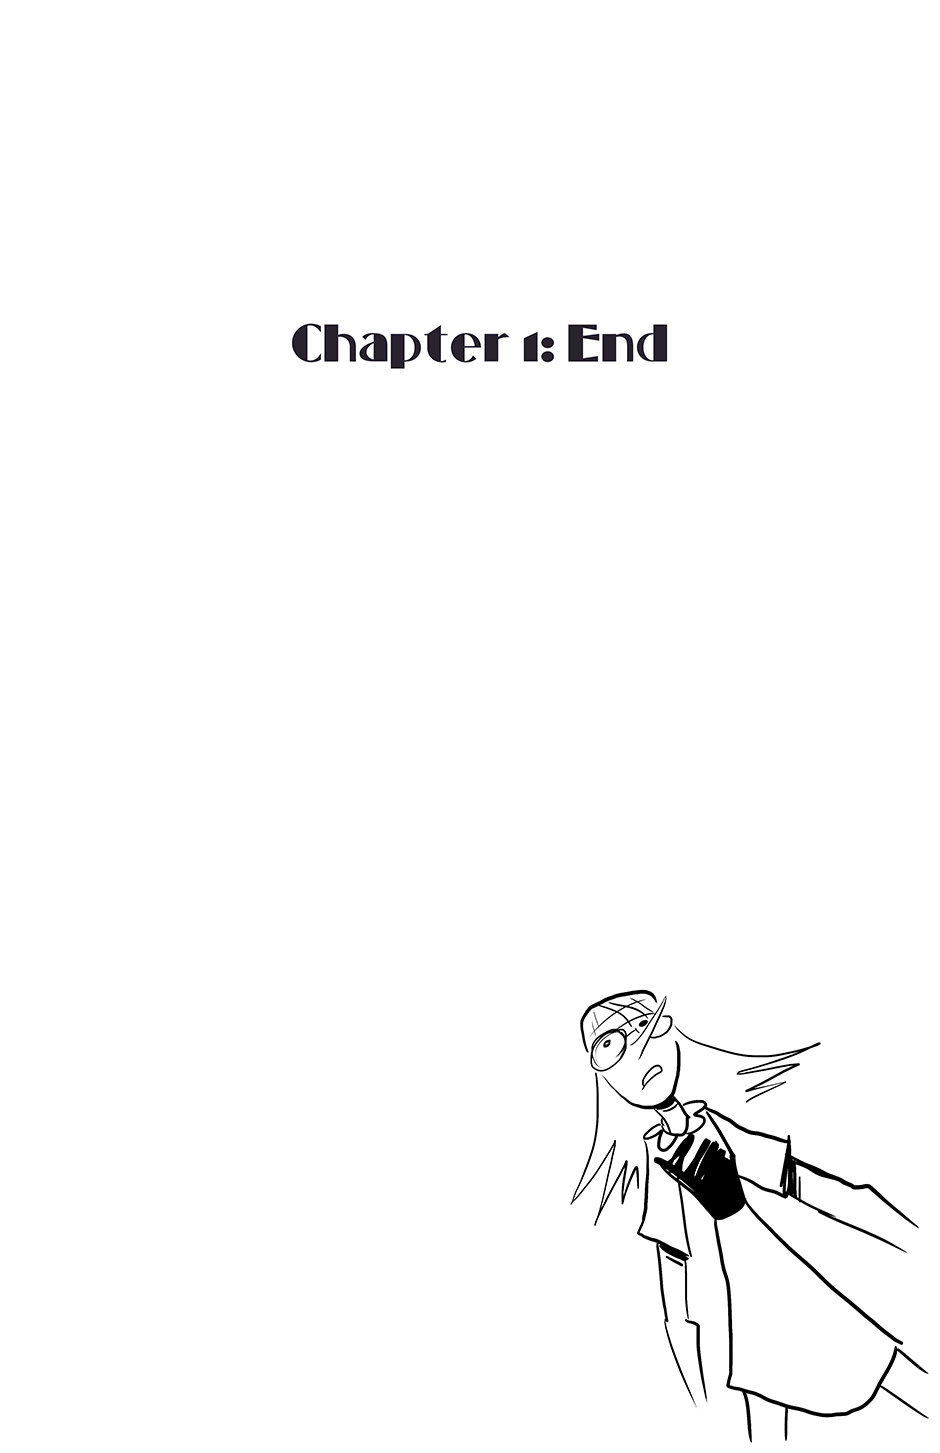 Chapter 1 End